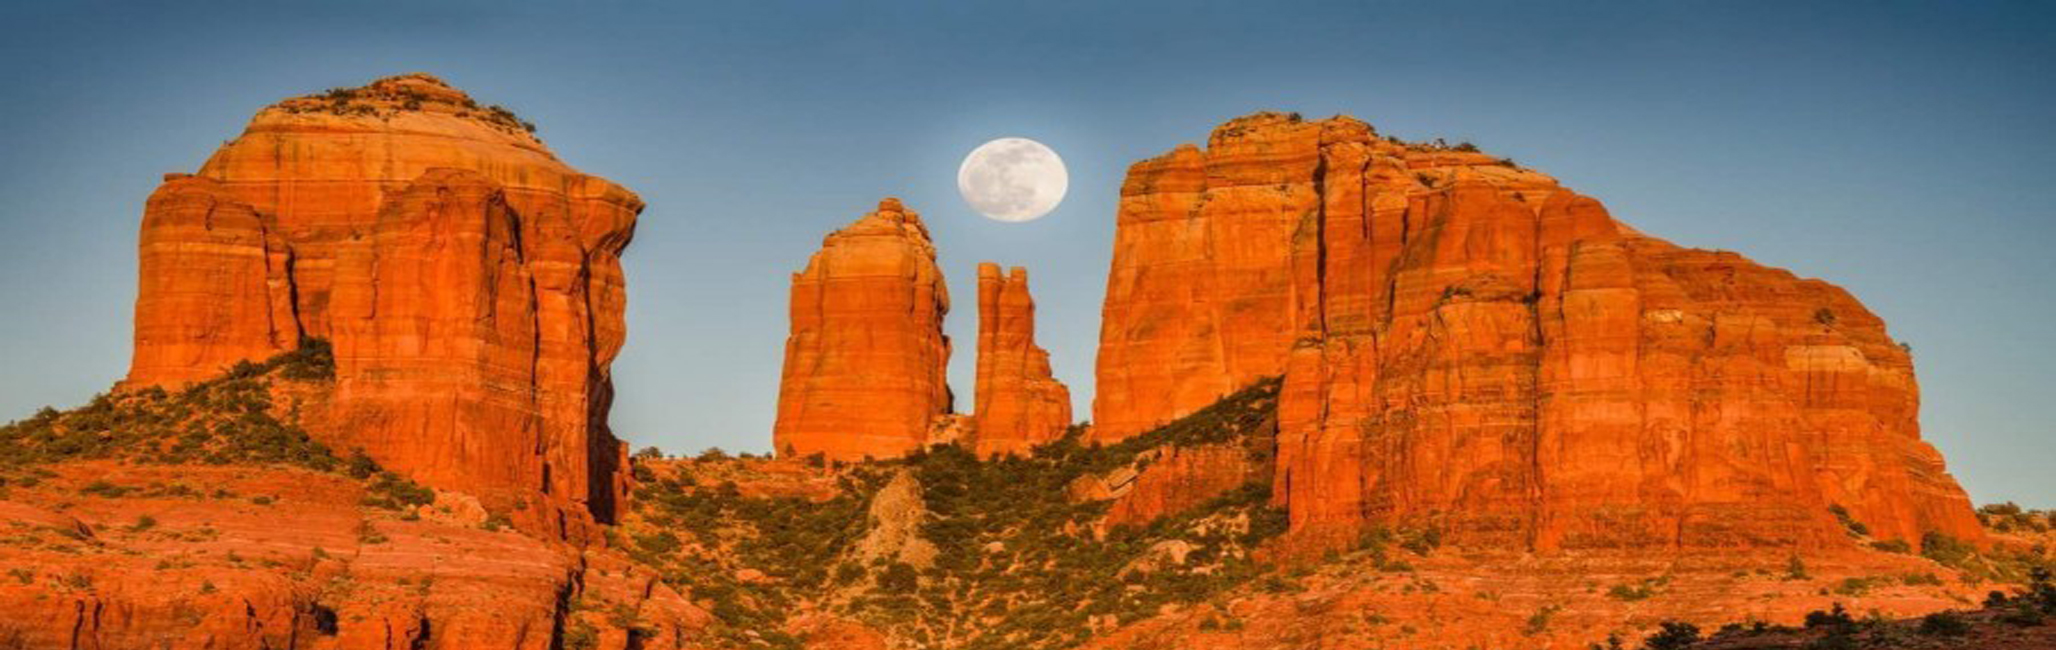 Sedona AZ custom tour packages